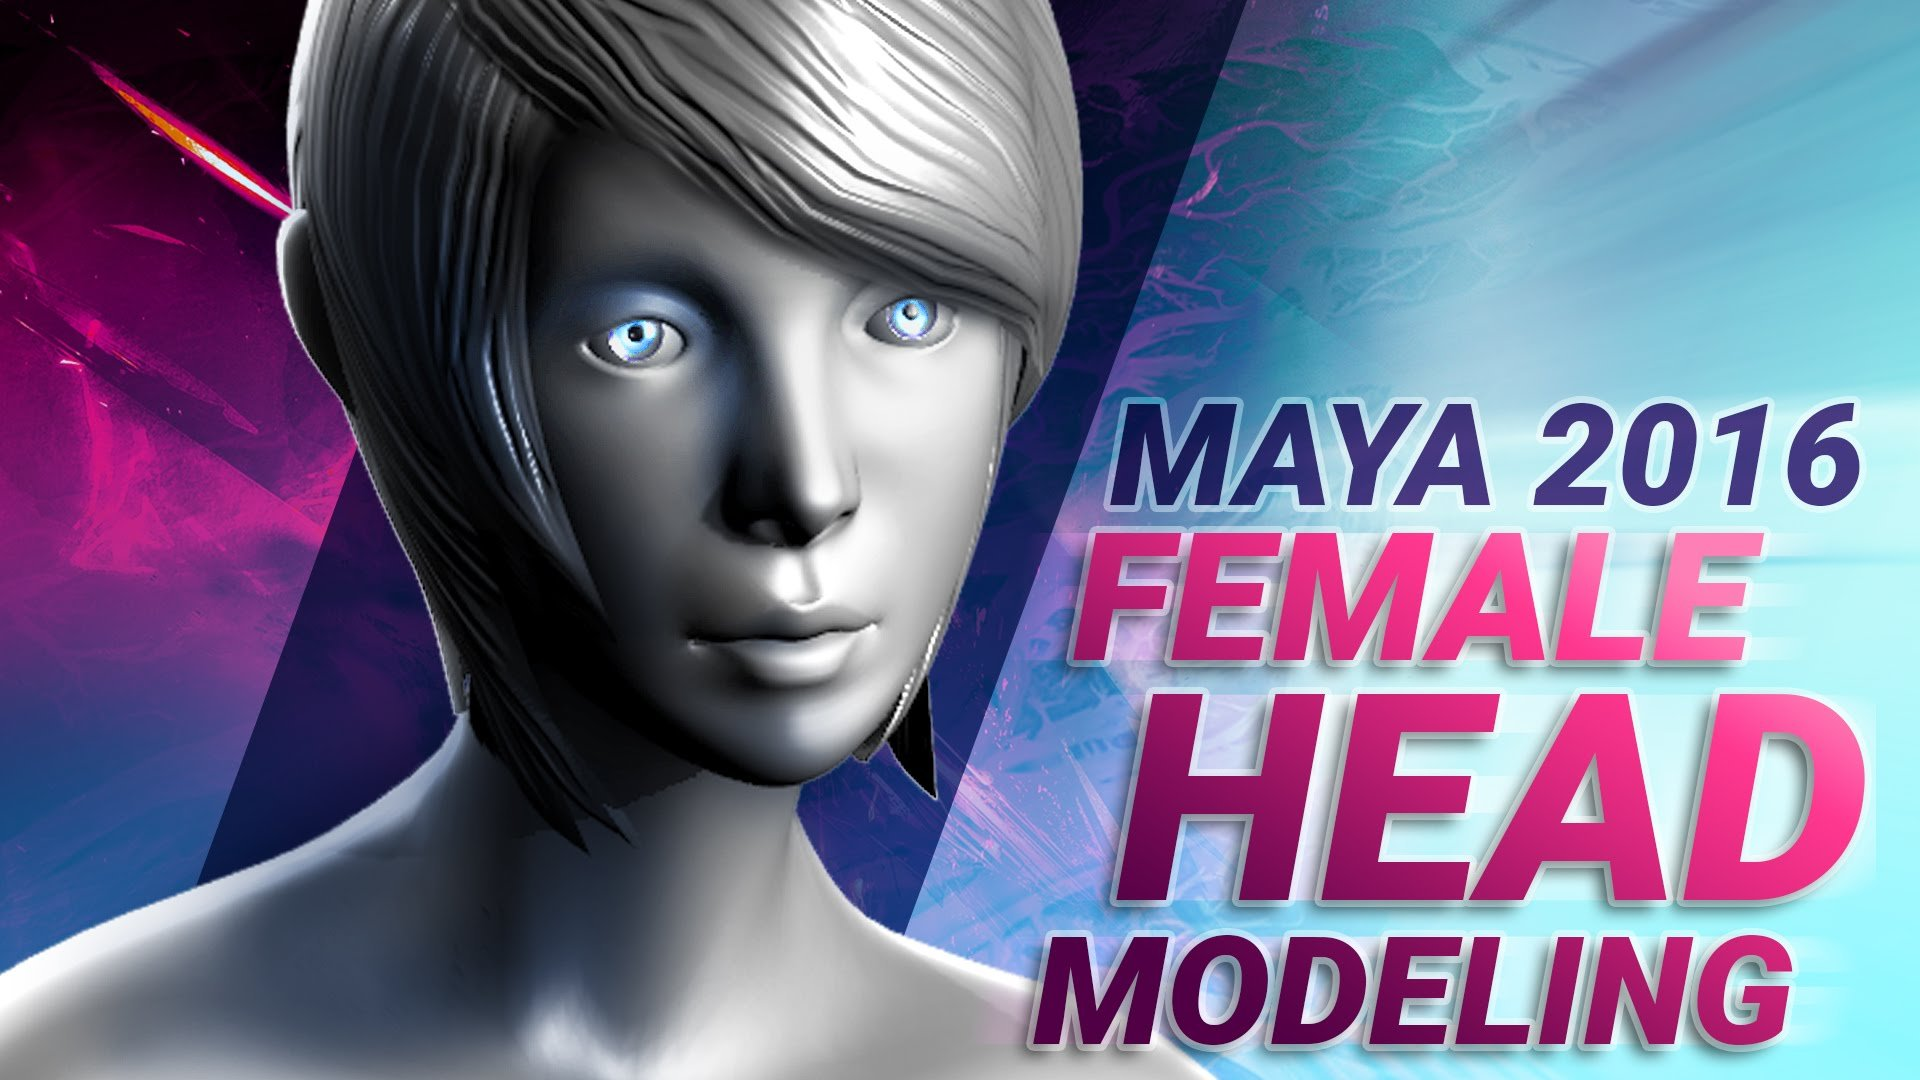 Maya 2016 female head modeling tutorial